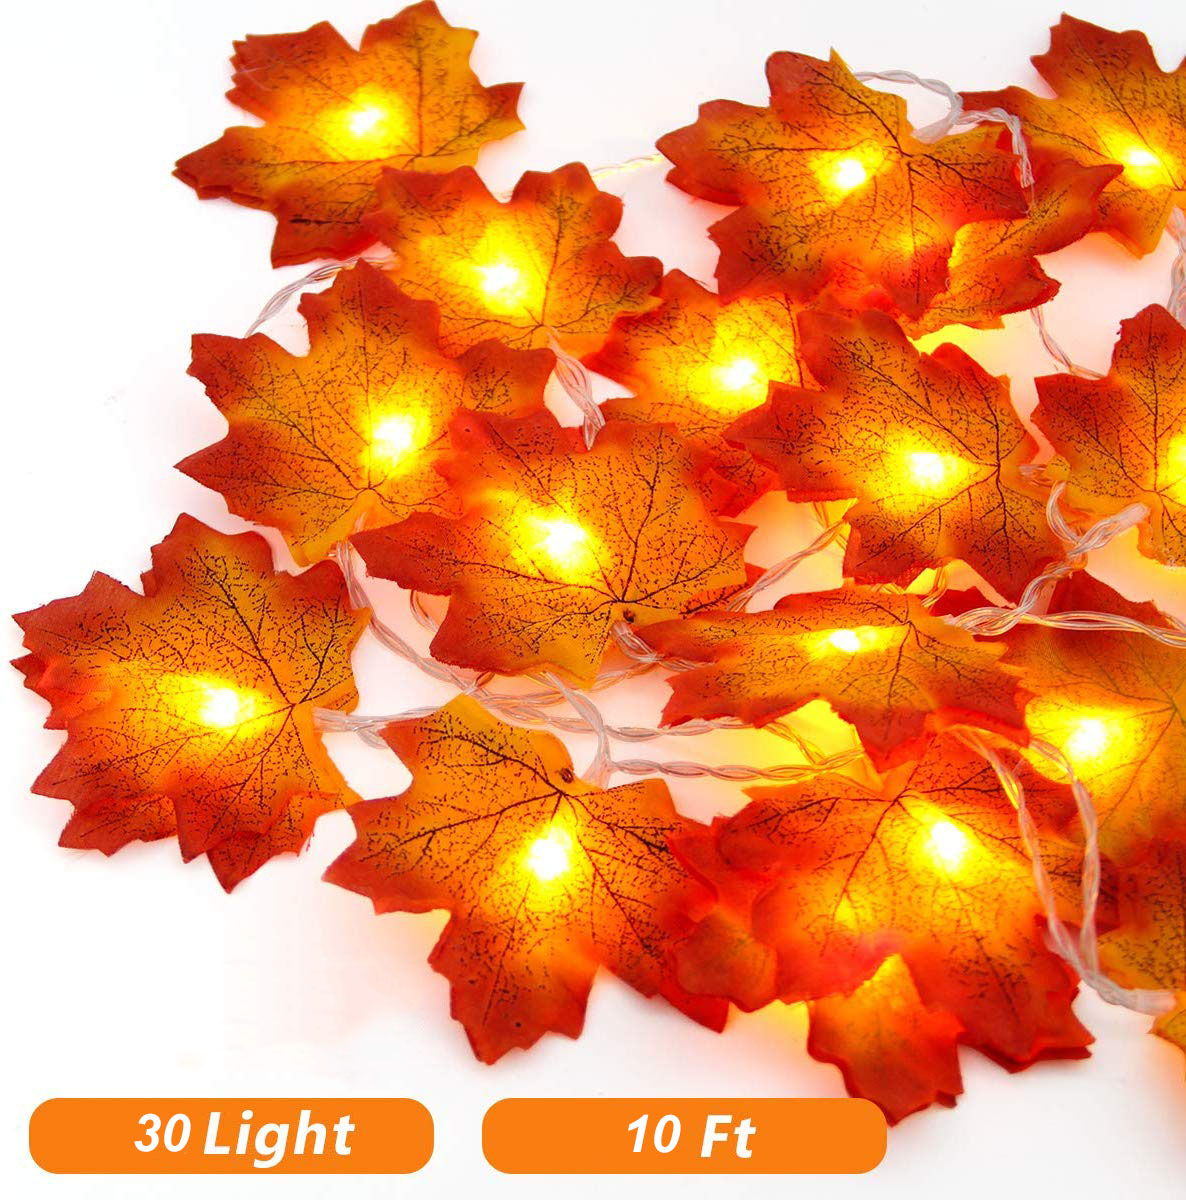 3m Led Maple Leaf String Lights With 30 Led Battery Operated Indoor Outdoor Fairy Lights Fall Garland String Lights Decorative Lights For Home Patio Party Thanksgiving Christmas Walmart Canada